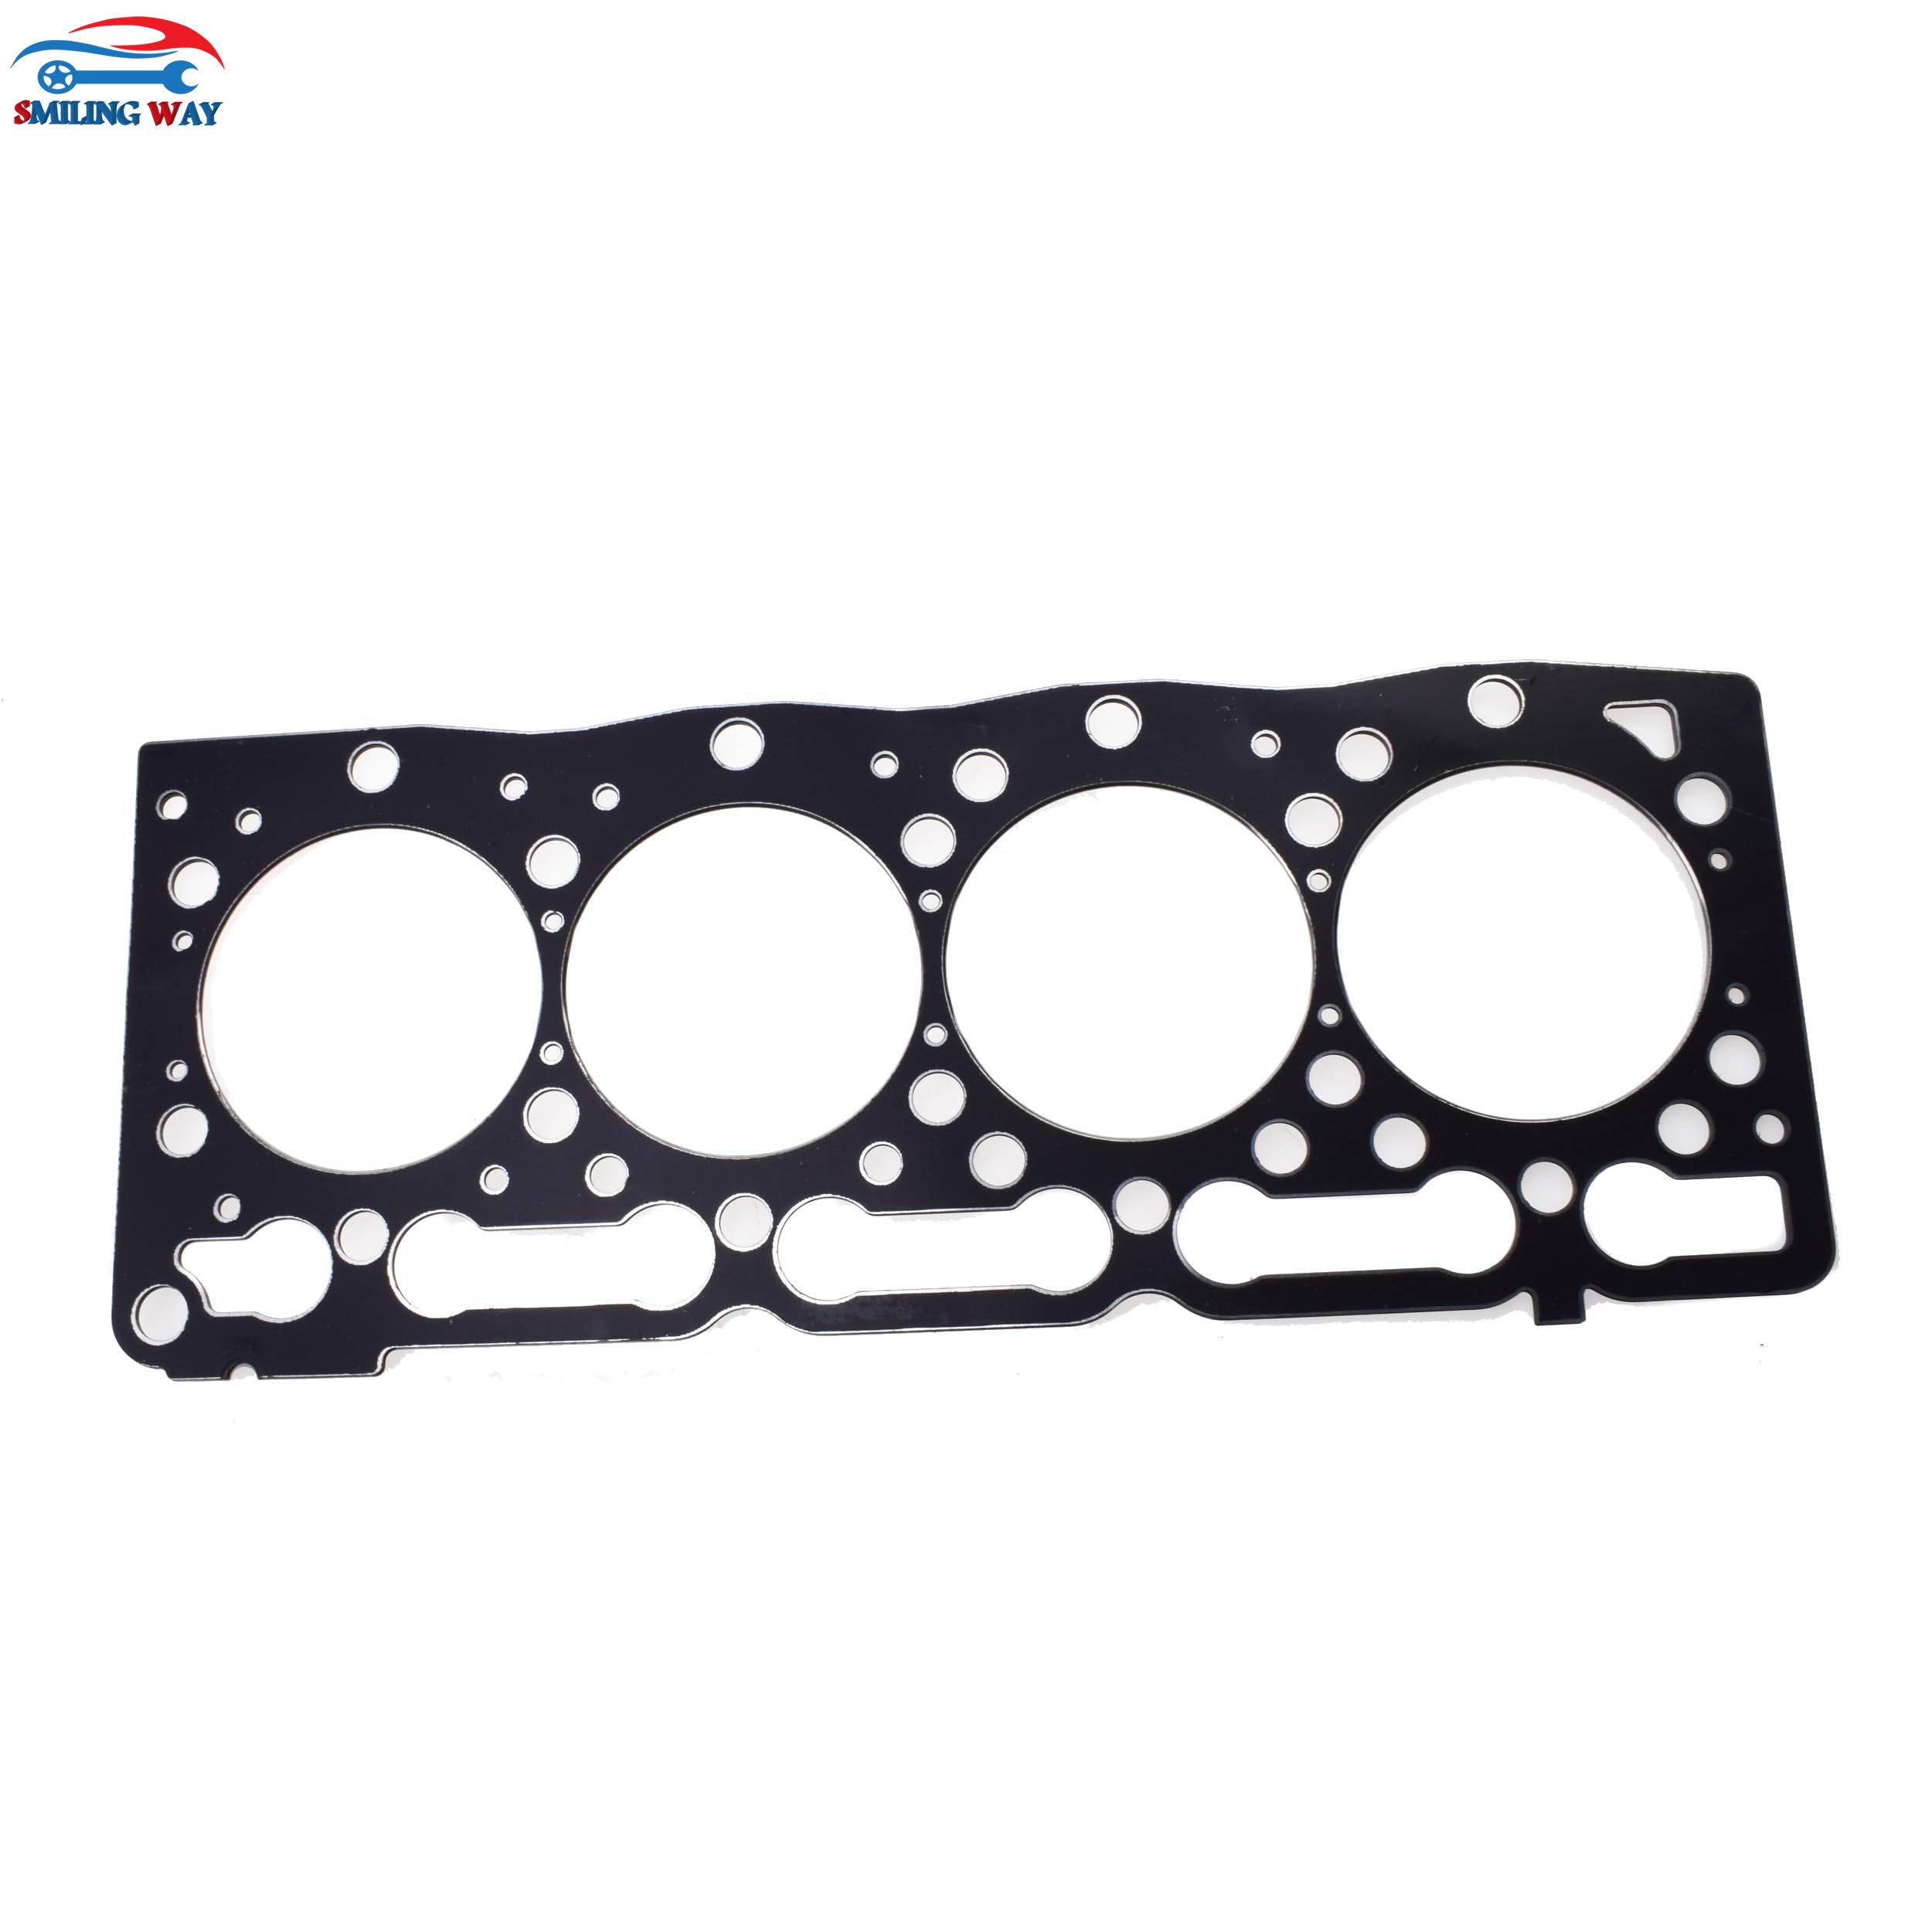 smiling way engine head gasket for kubota v1505 oe kbrv1712gh 16394 03310 in cyl head valve cover gasket from automobiles motorcycles on  [ 2500 x 2500 Pixel ]